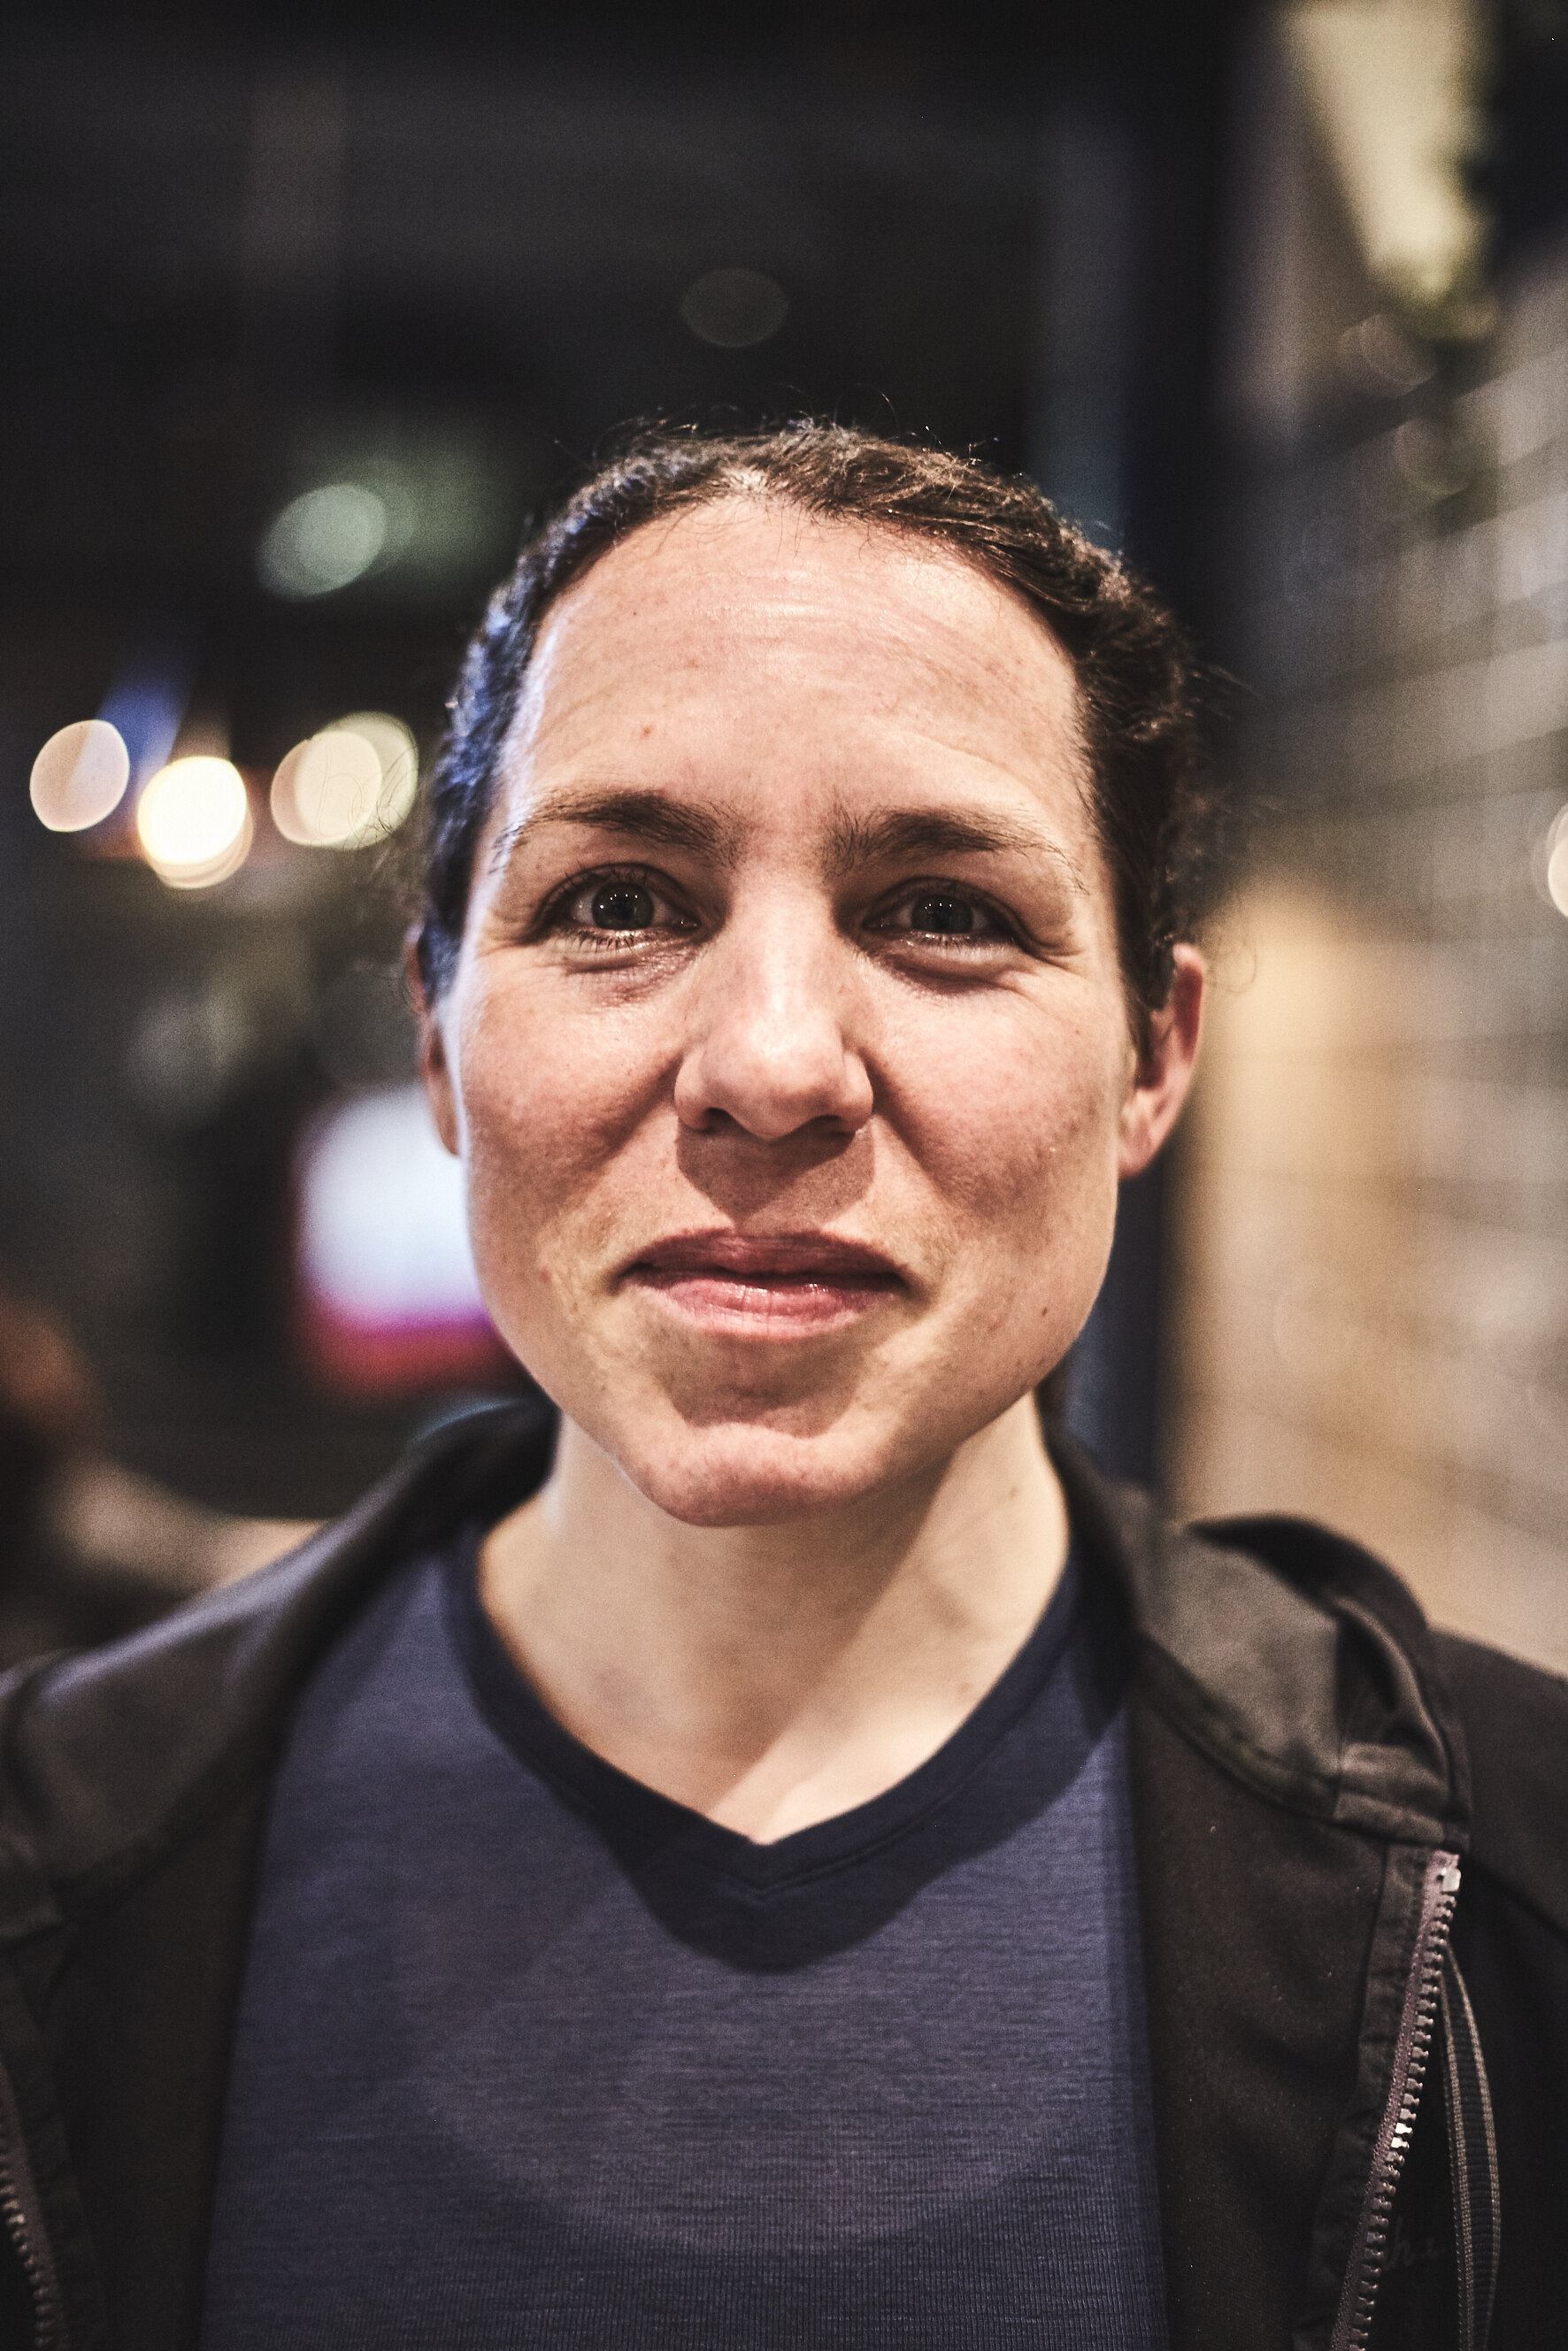 Emily Chappell, endurance cyclist and author